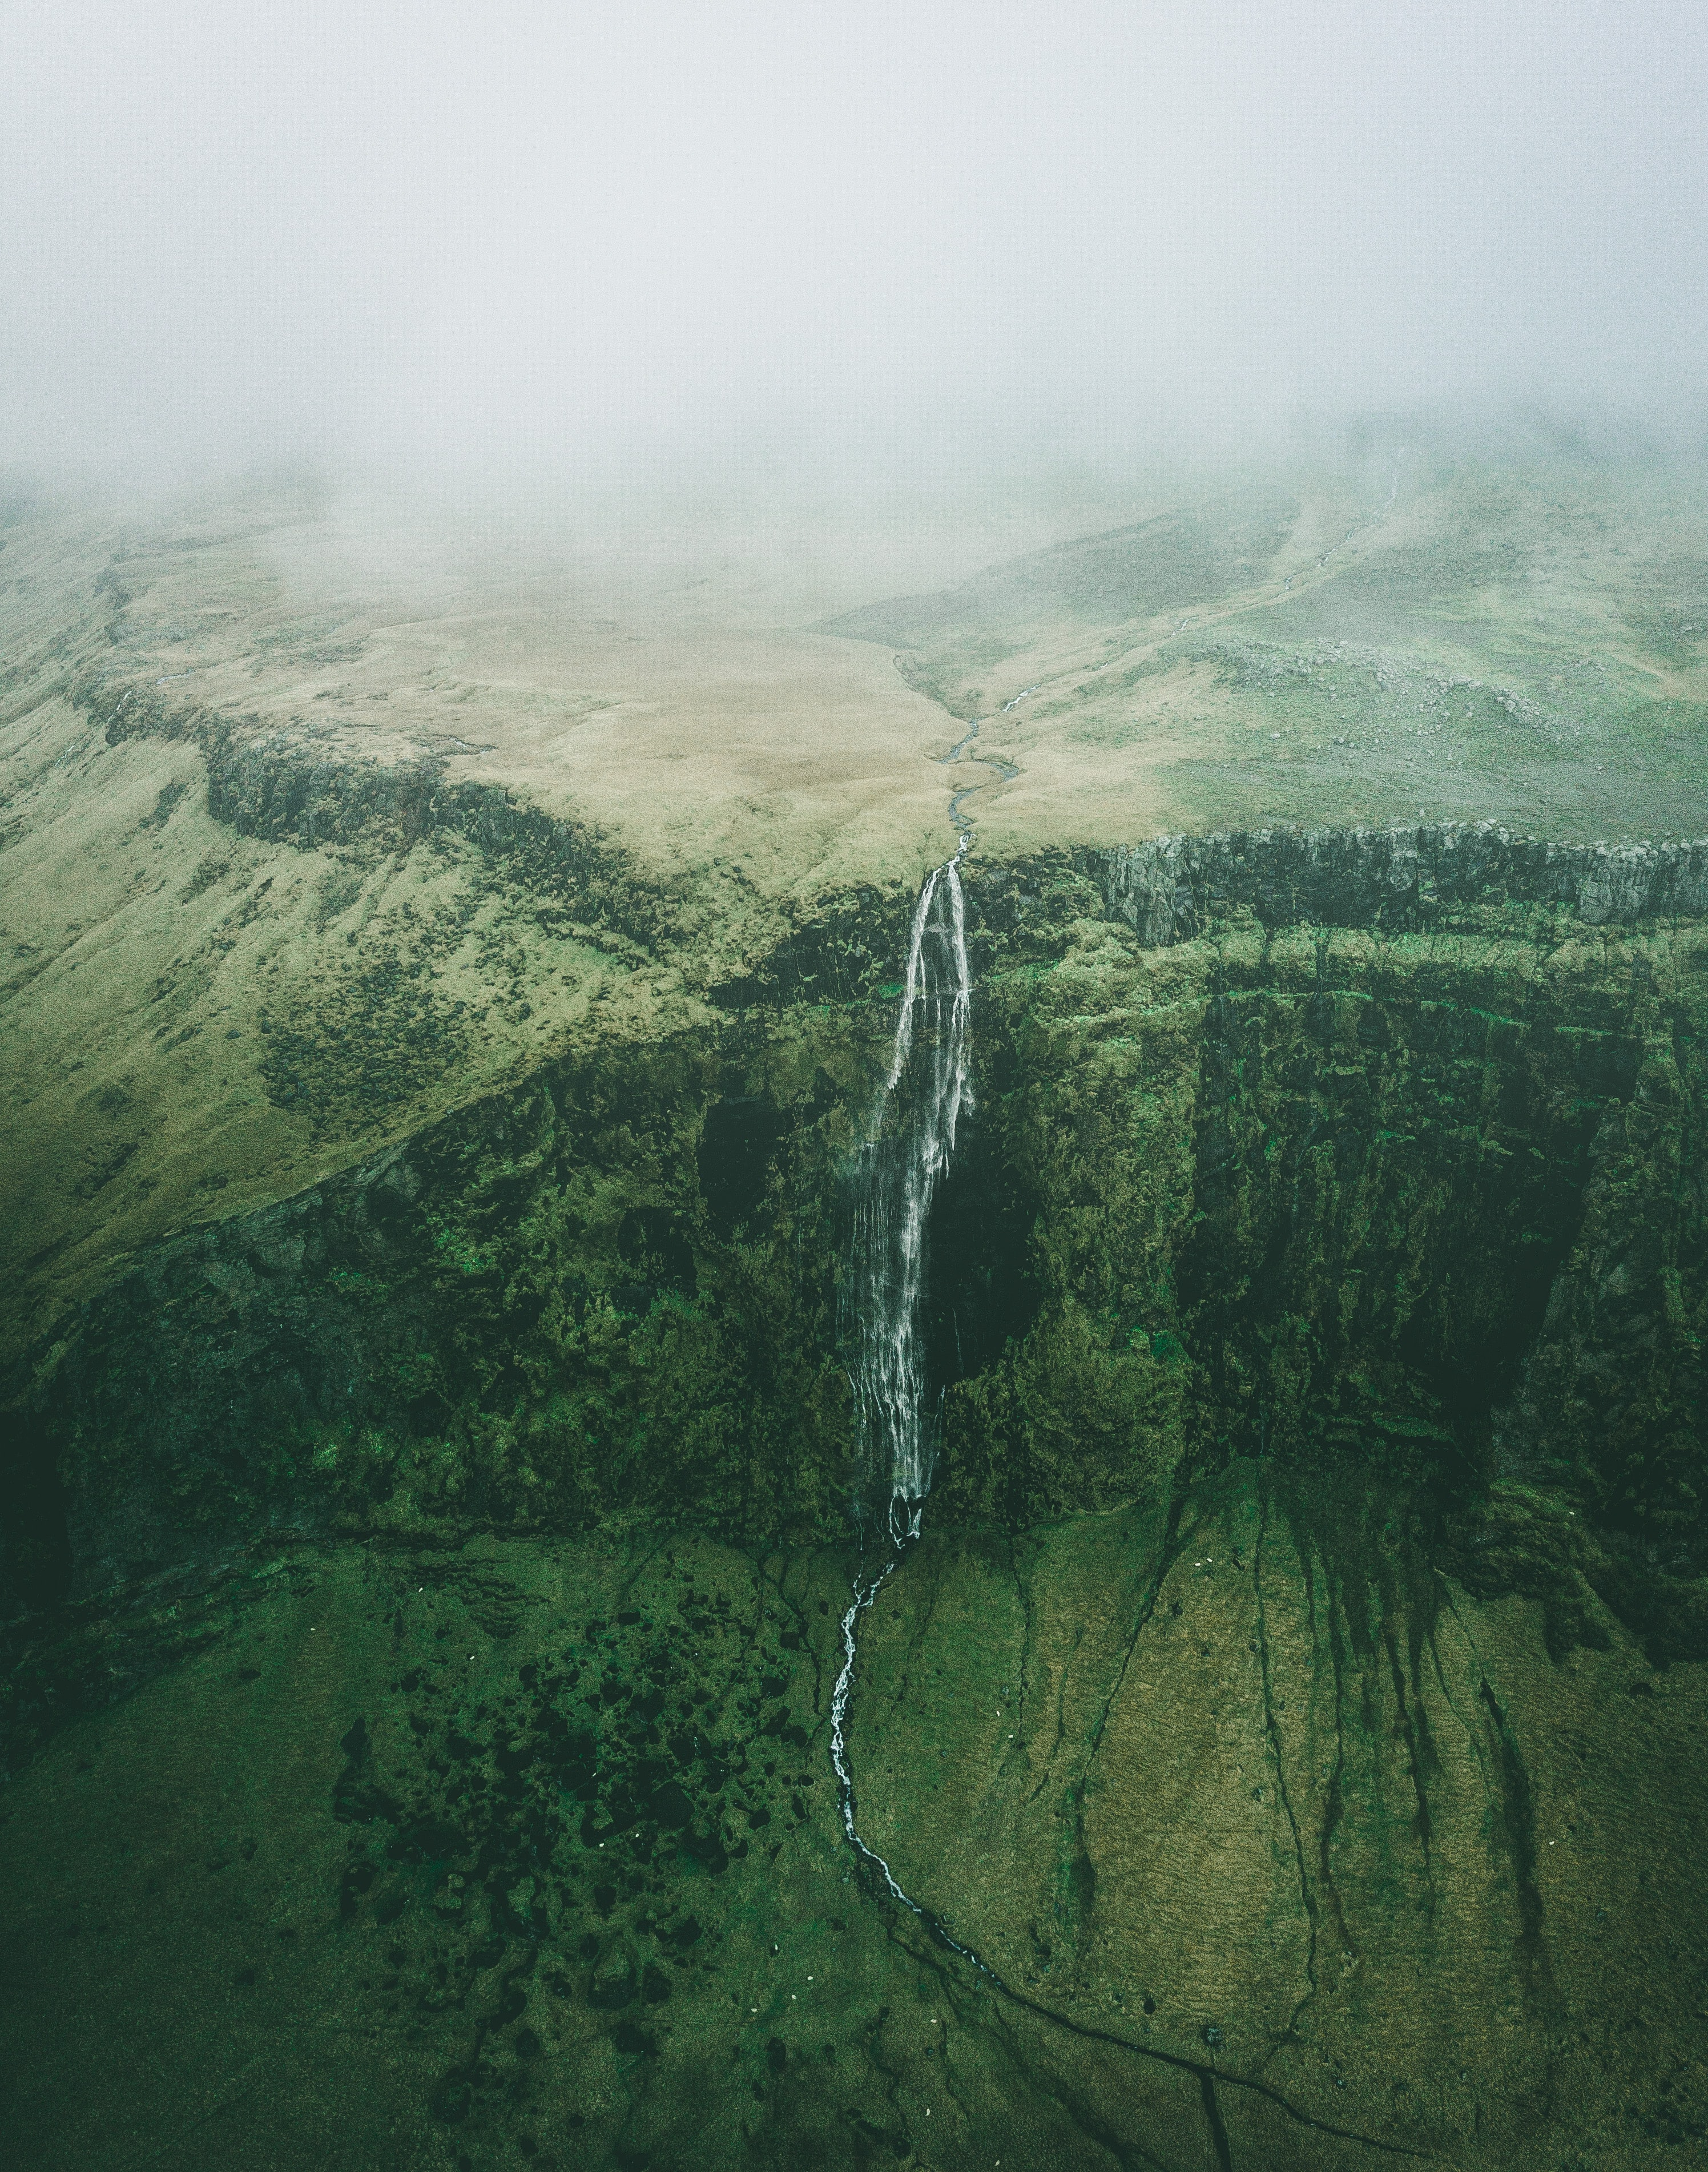 aerial photo of waterfalls during foggy weather